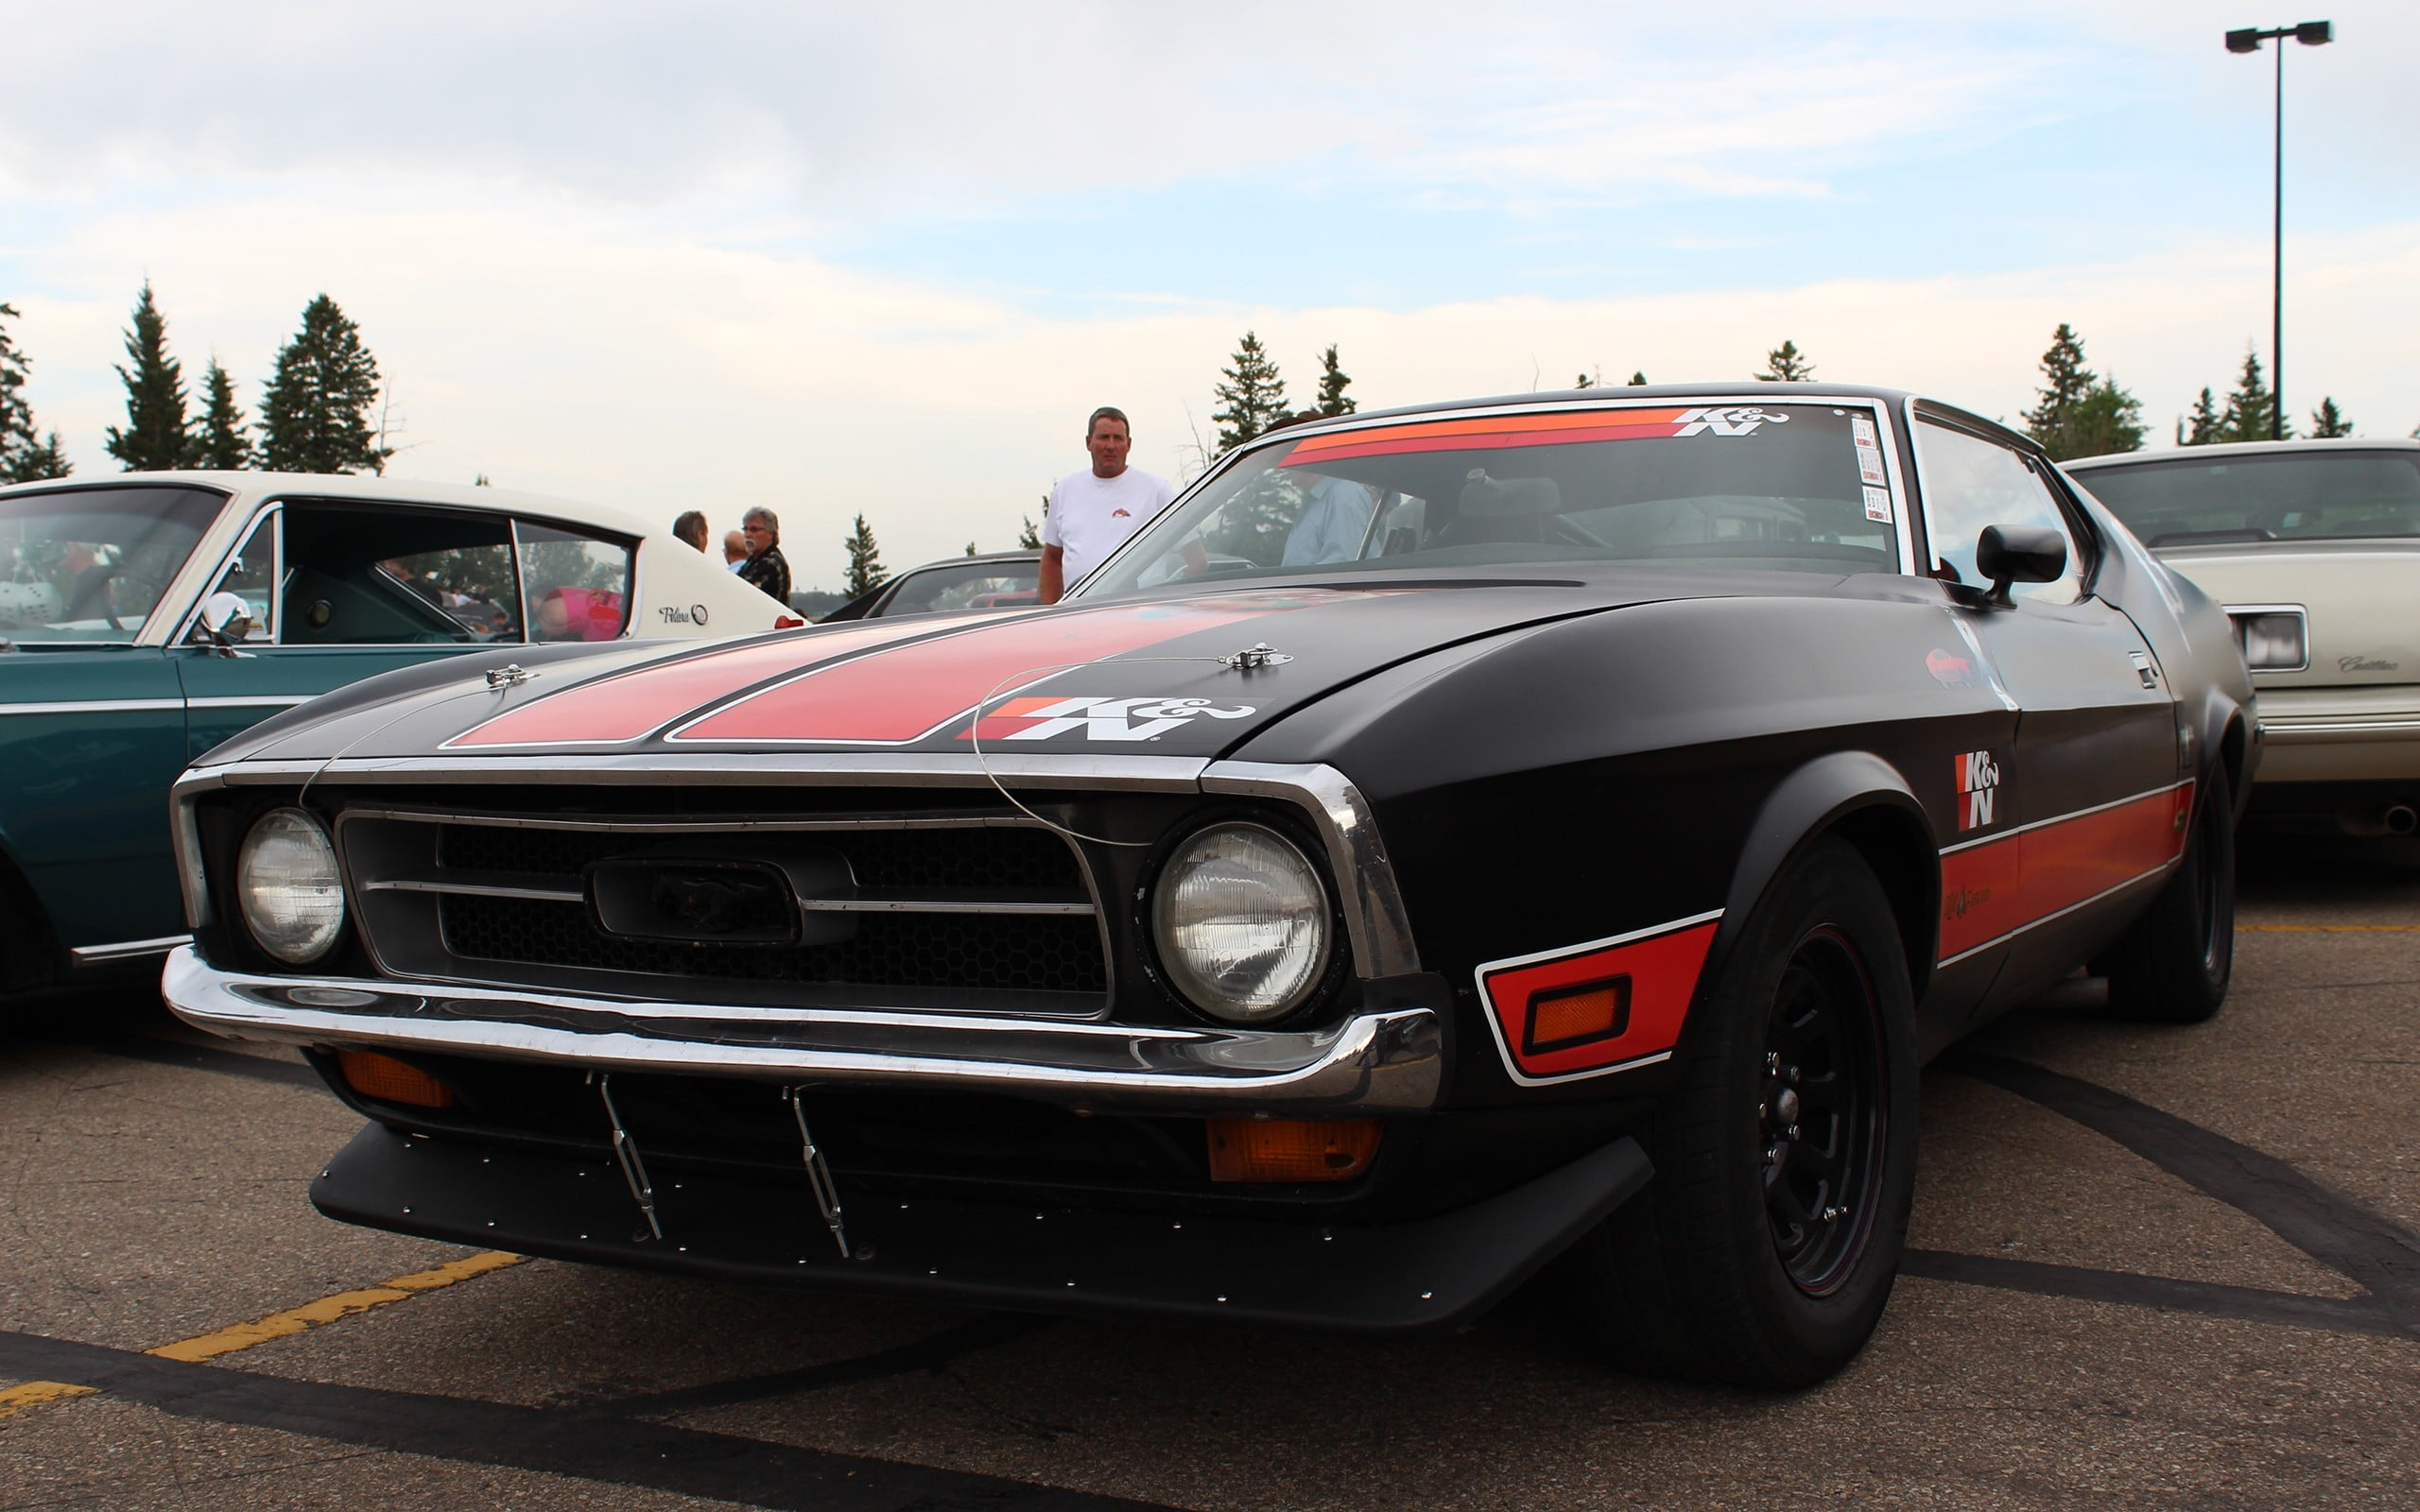 Black and red classic coupe during daytime HD wallpaper | Wallpaper ...